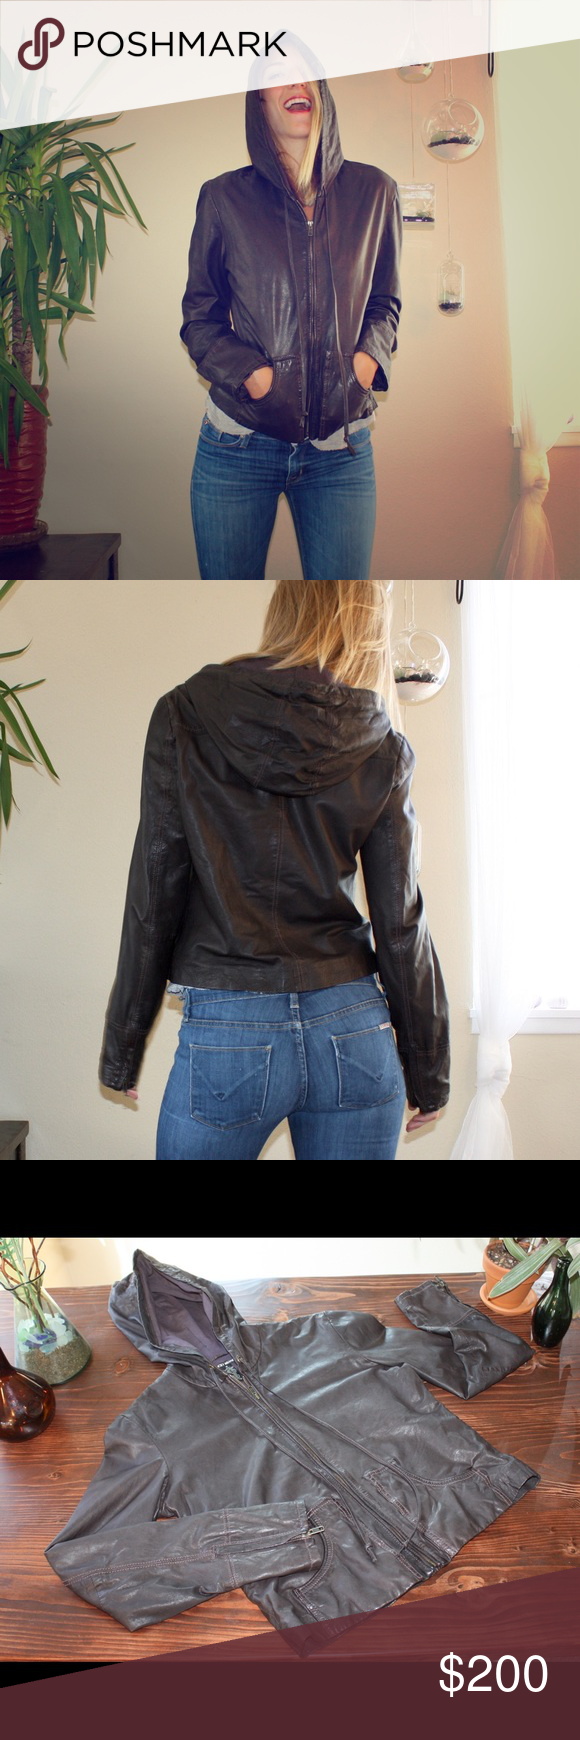 Lucky Brand 100% Genuine Leather Jacket Beautiful, very lightly worn brown leather jacket with hood. In same condition as when bought new! Simple and timeless design with zipper detailing on cuffs and leather drawstrings. Lucky Brand Jackets & Coats